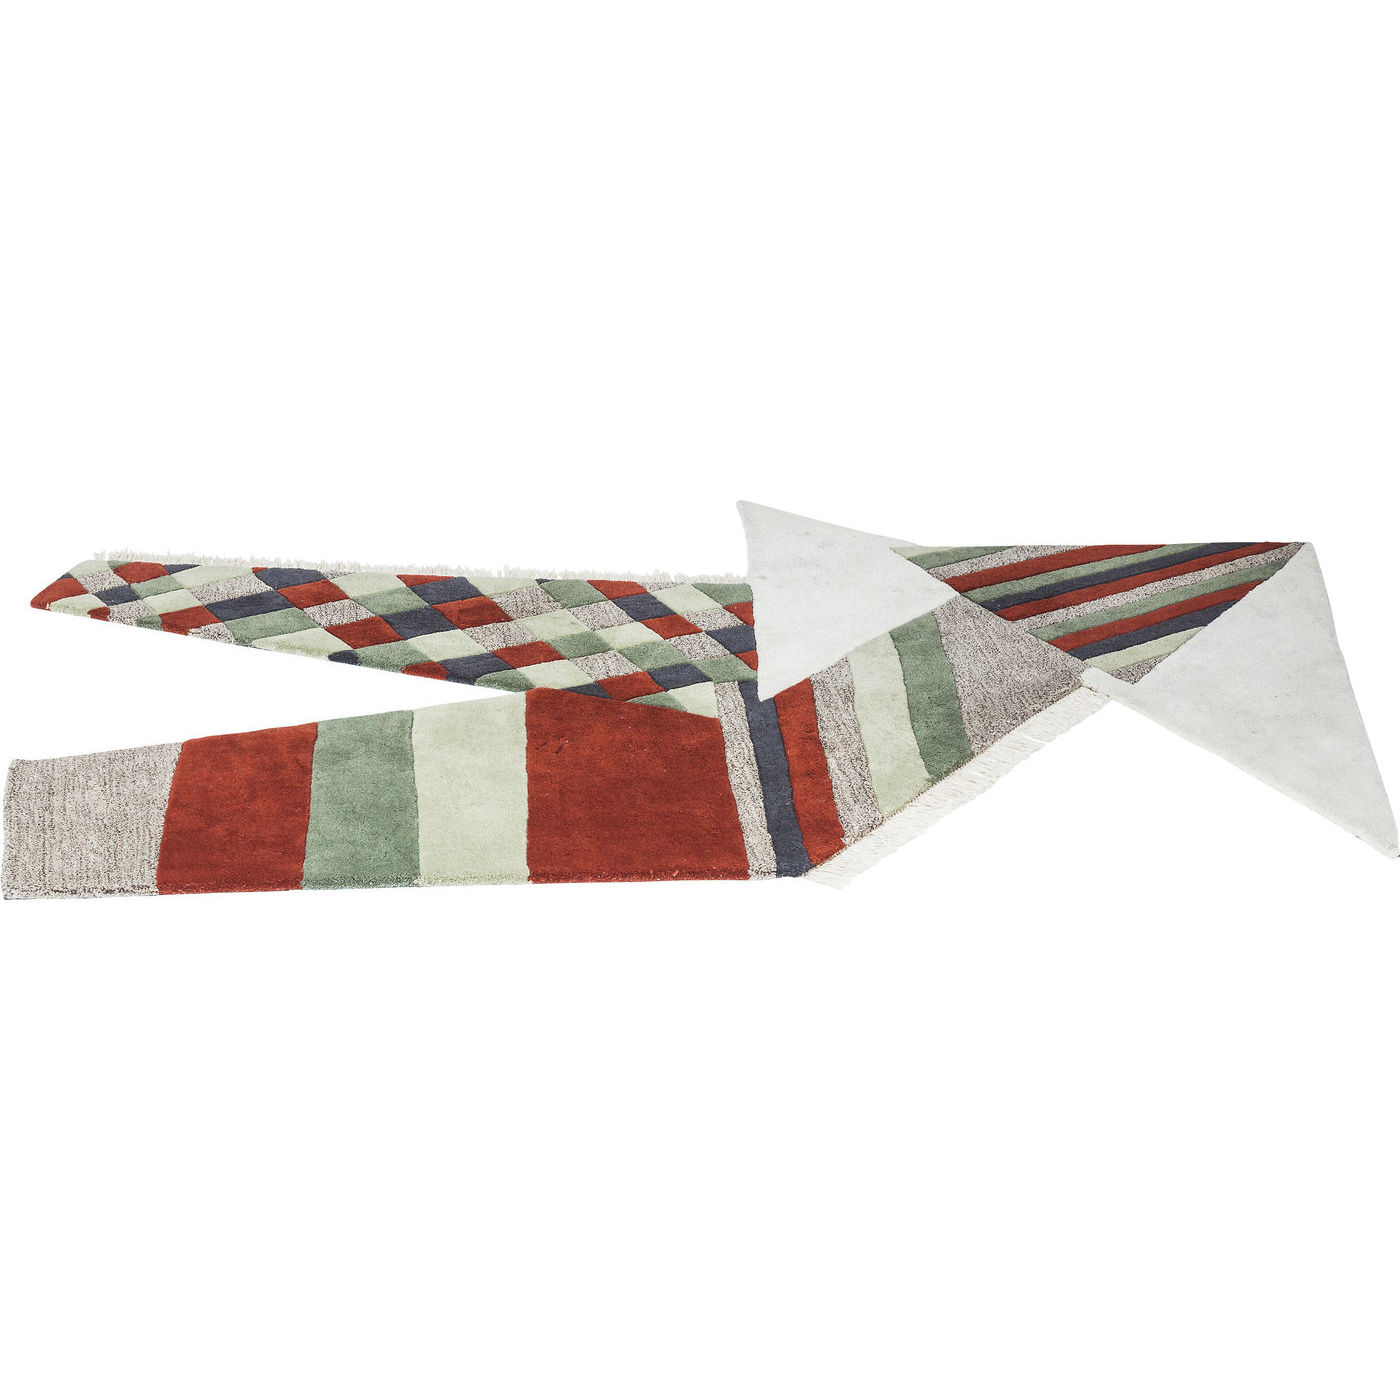 Teppich Kibek Vintage Collage Pacific Teppich Collage Origami Terra 240x170cm Kare Design